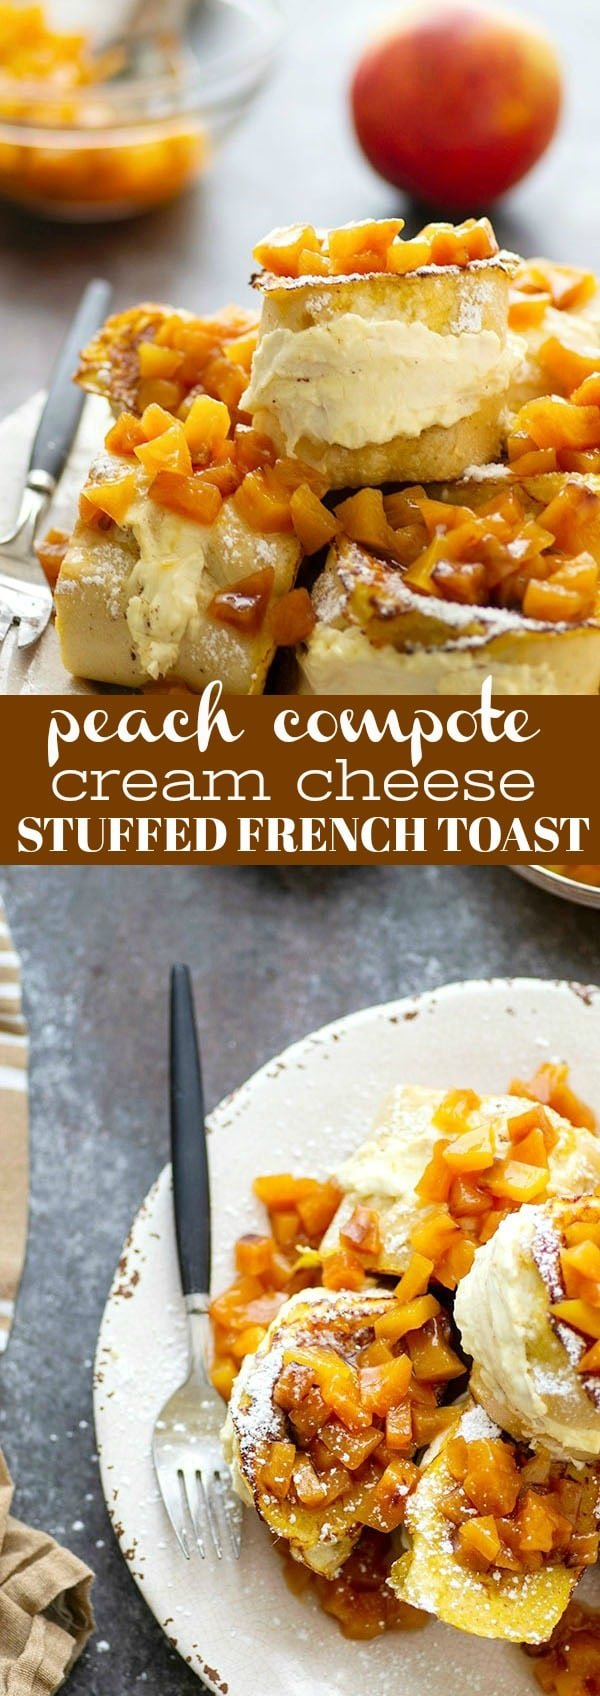 Stuffed with a tangy cream cheese filling and topped with a sweet peach compote, this stuffed french toast is a stunner for any brunch and on the table in minutes!